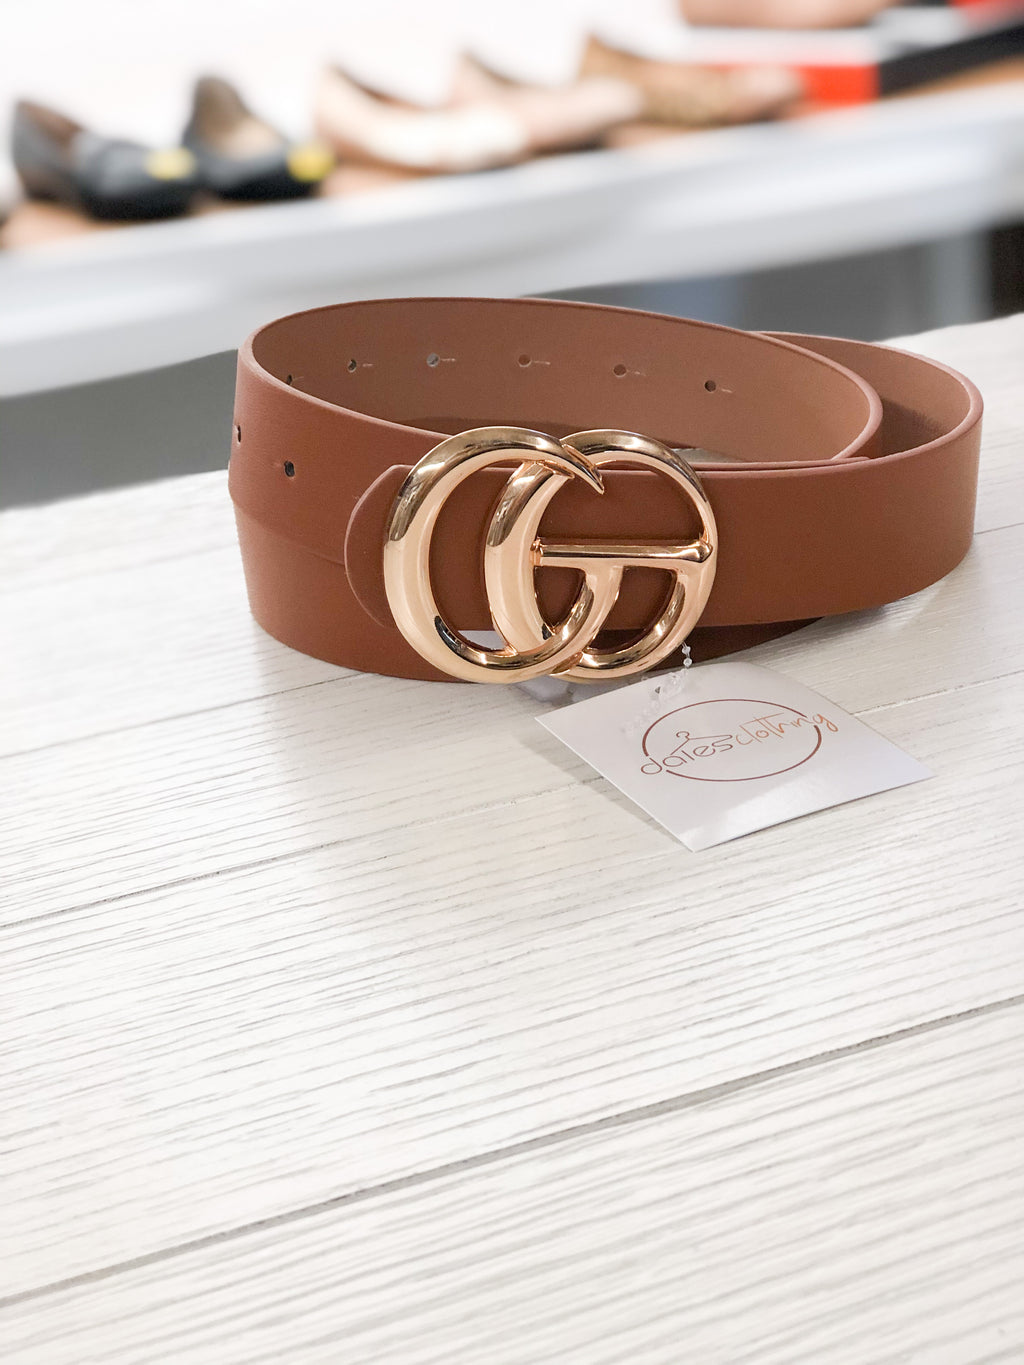 The Gucci Inspired Belt COGNAC